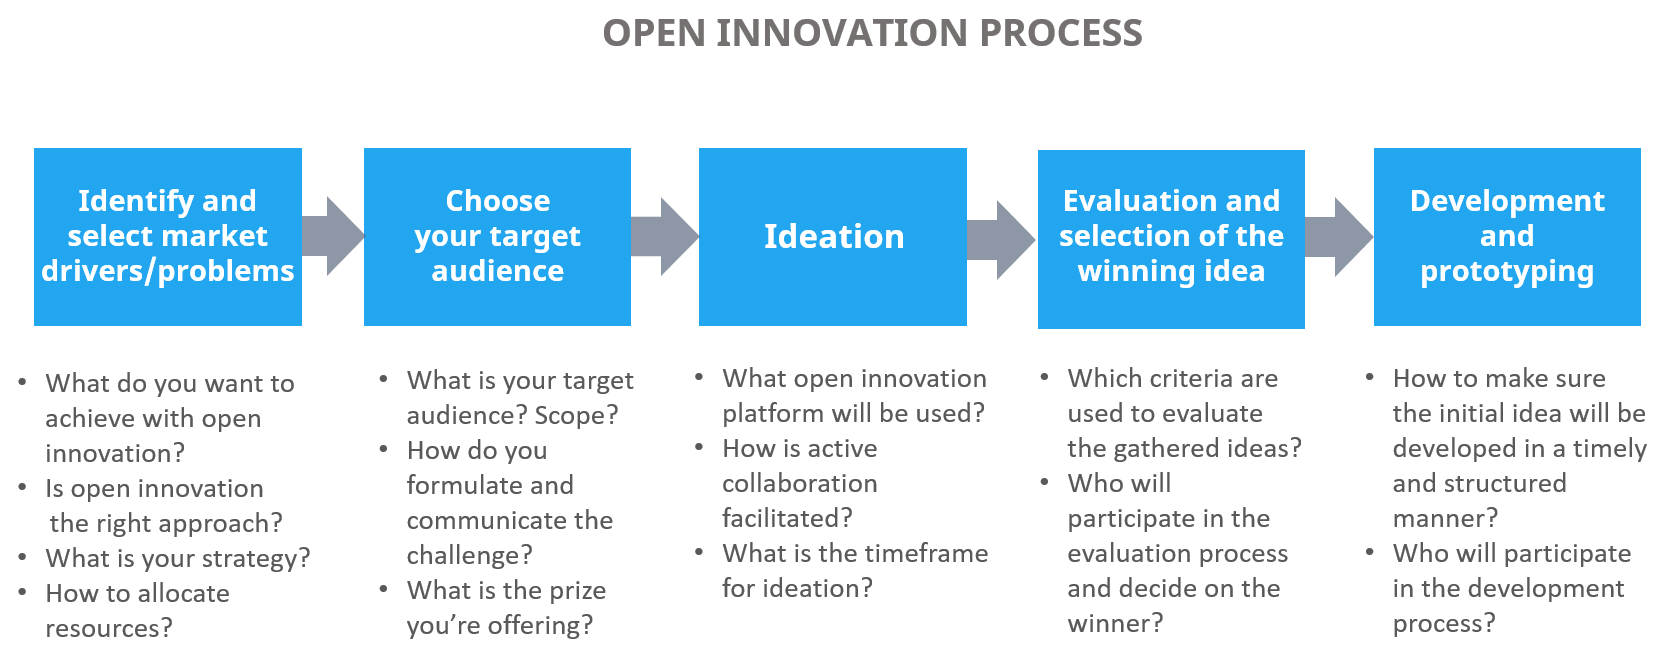 Open innovation process